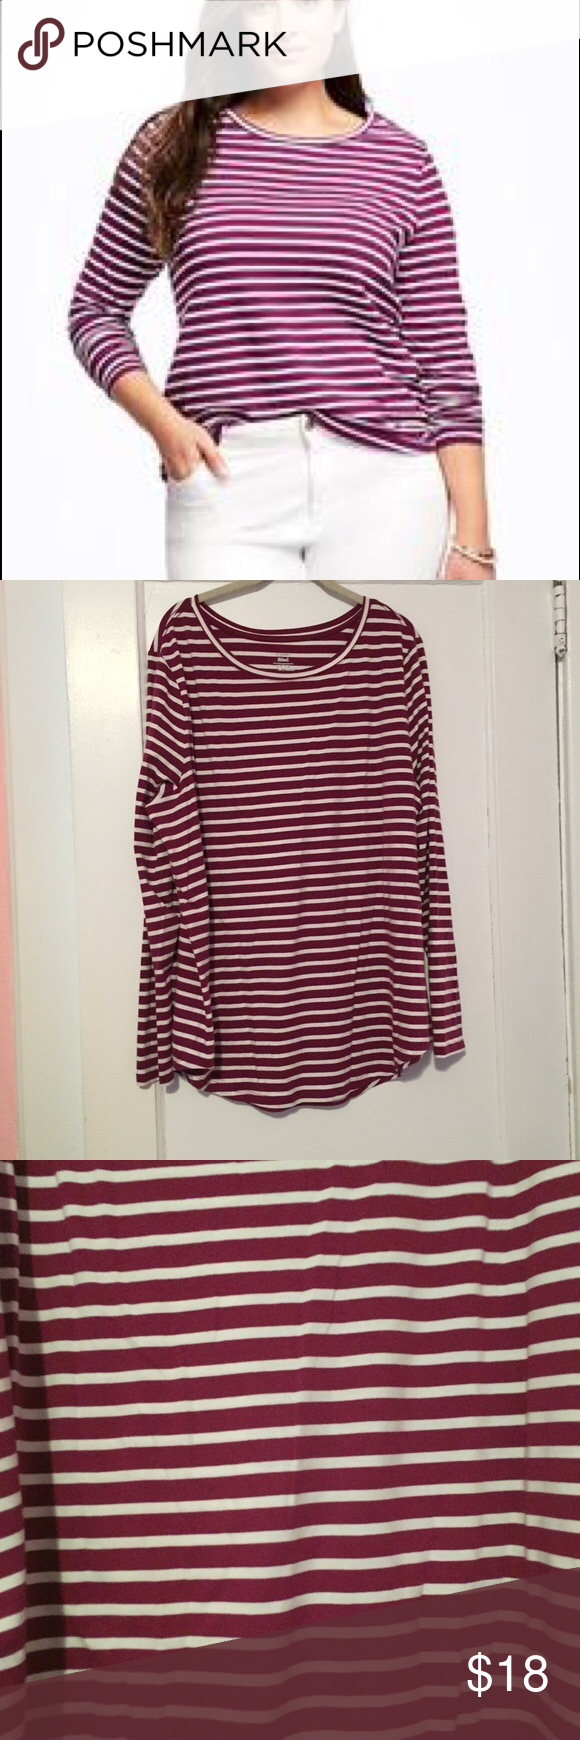 Old Navy Berry and White Striped Long Sleeve Tee Old Navy Berry and White Striped Long Sleeve Tee. Like new Old Navy Tops Tees - Long Sleeve